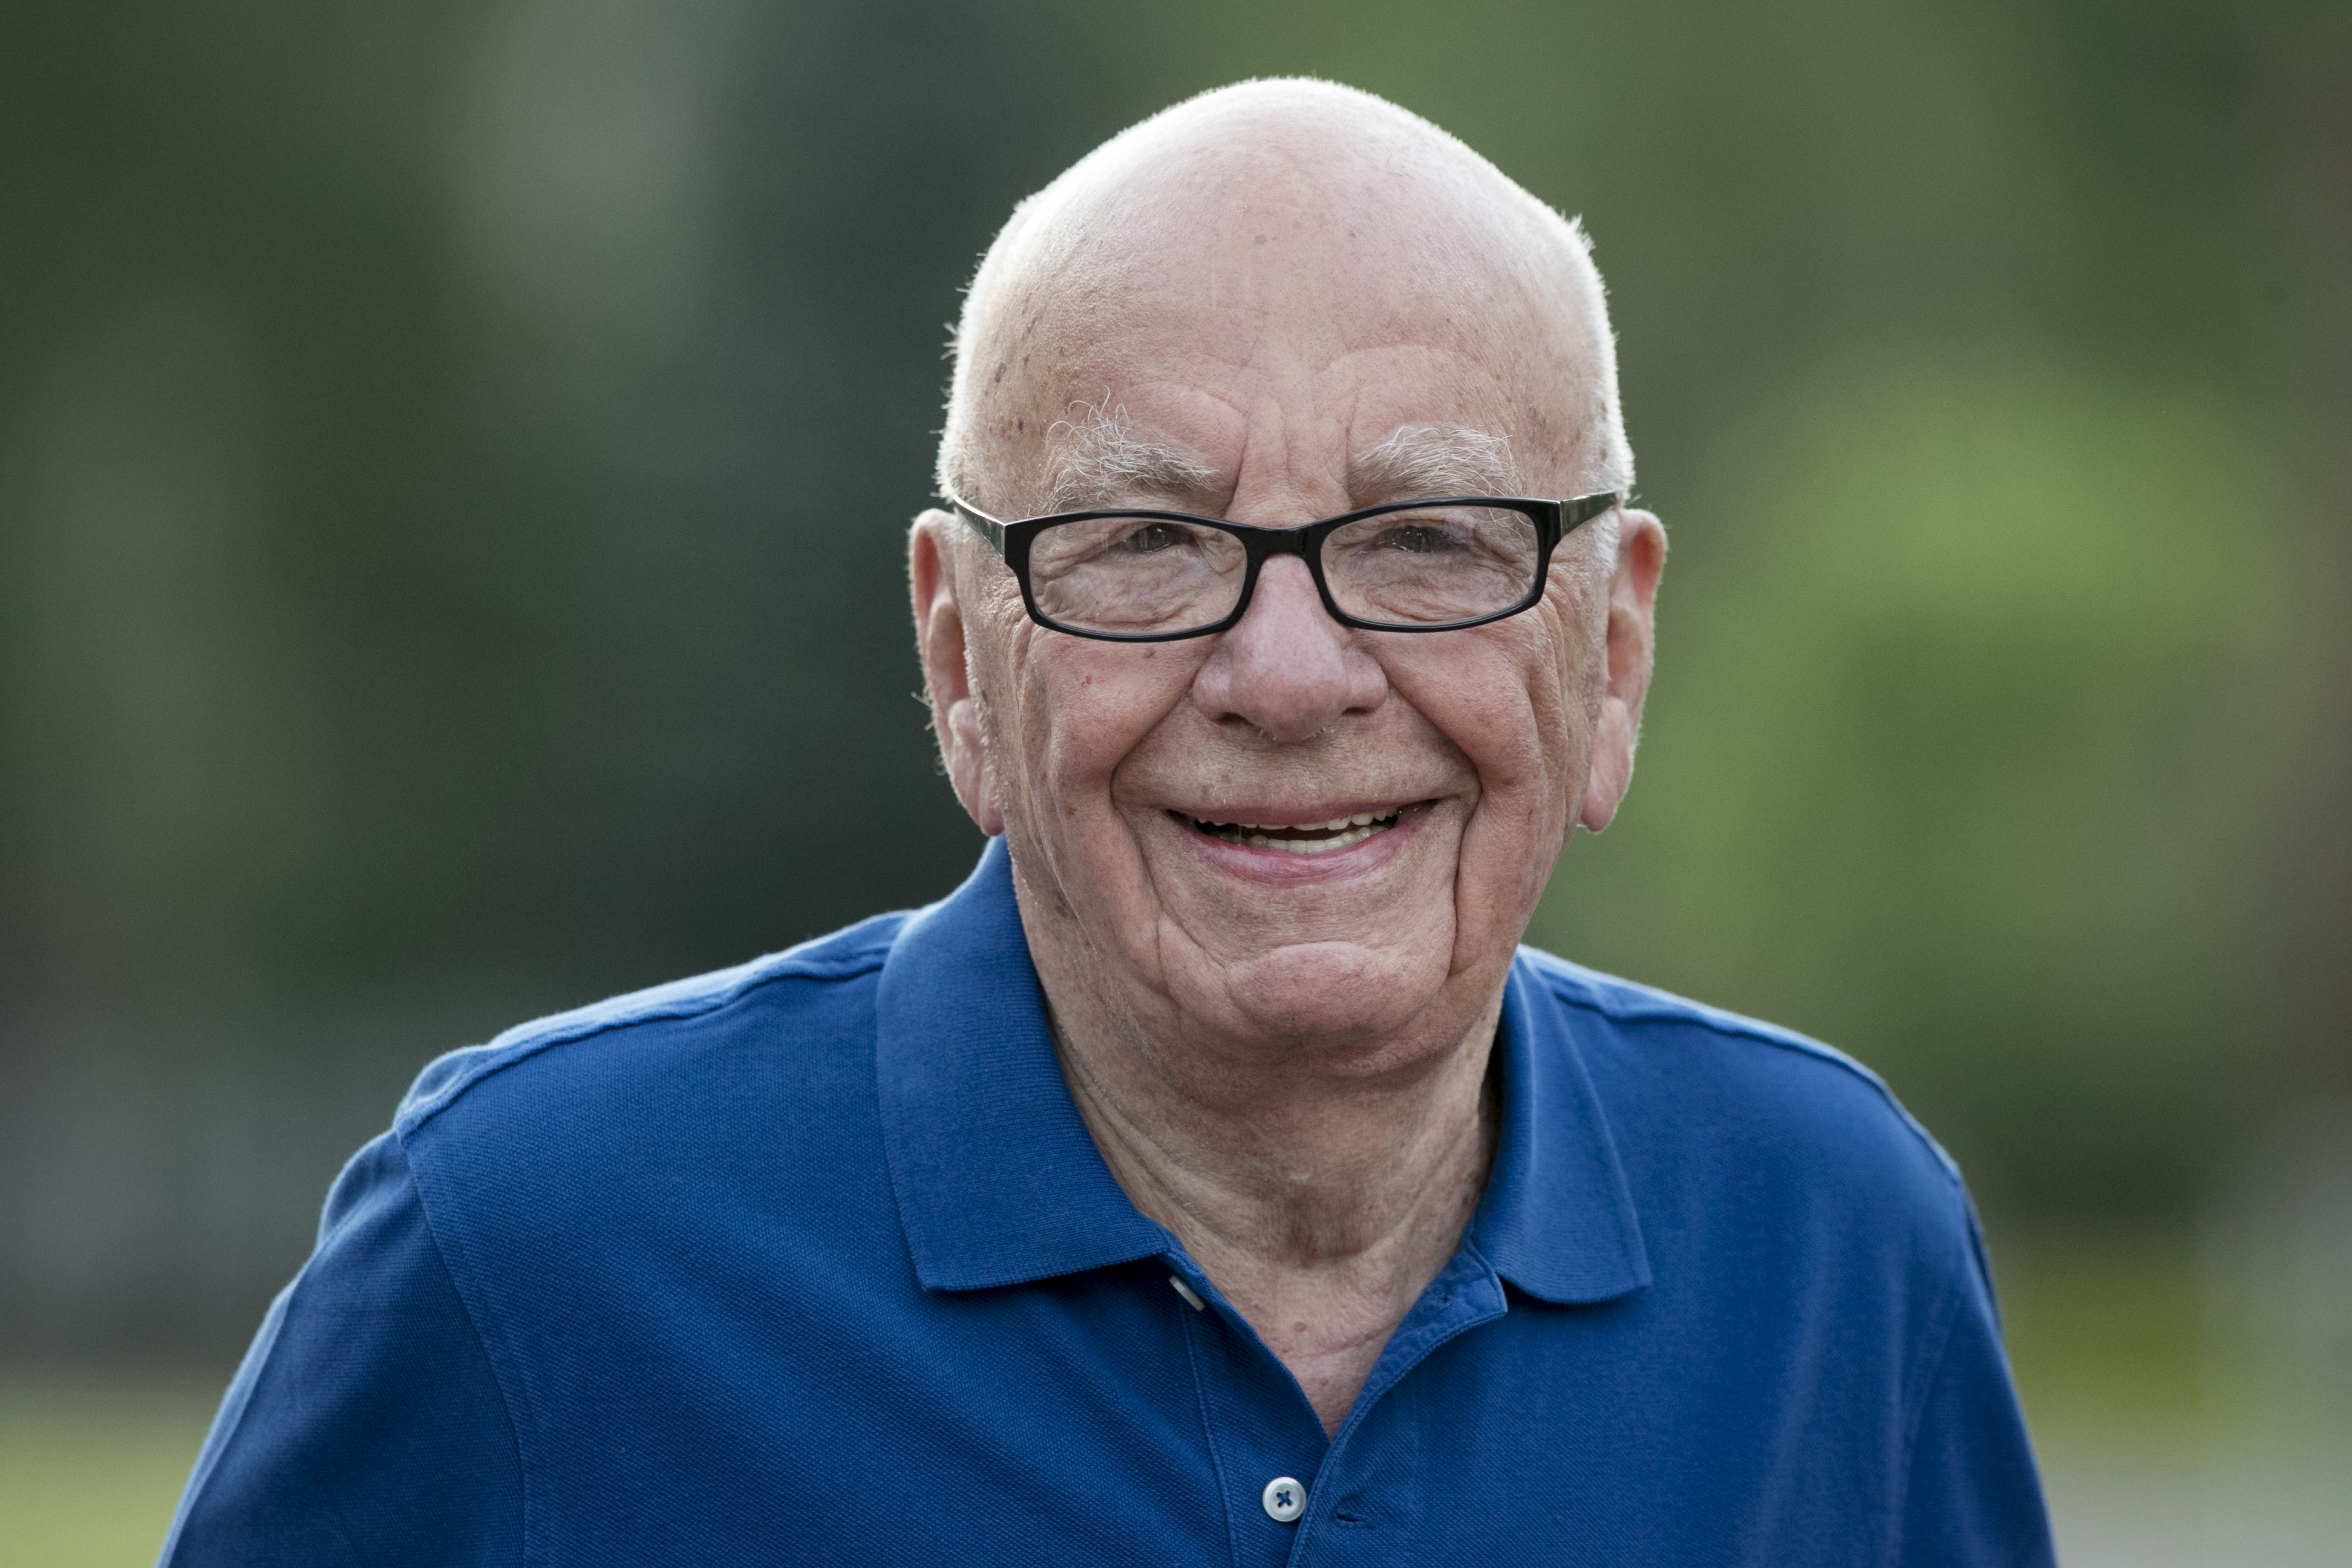 Rupert Murdoch, chairman of News Corp., arrives to a morning session at the Sun Valley Lodge during the Allen & Co. Media and Technology Conference in Sun Valley, Idaho, U.S., on Wednesday, July 9, 2014.